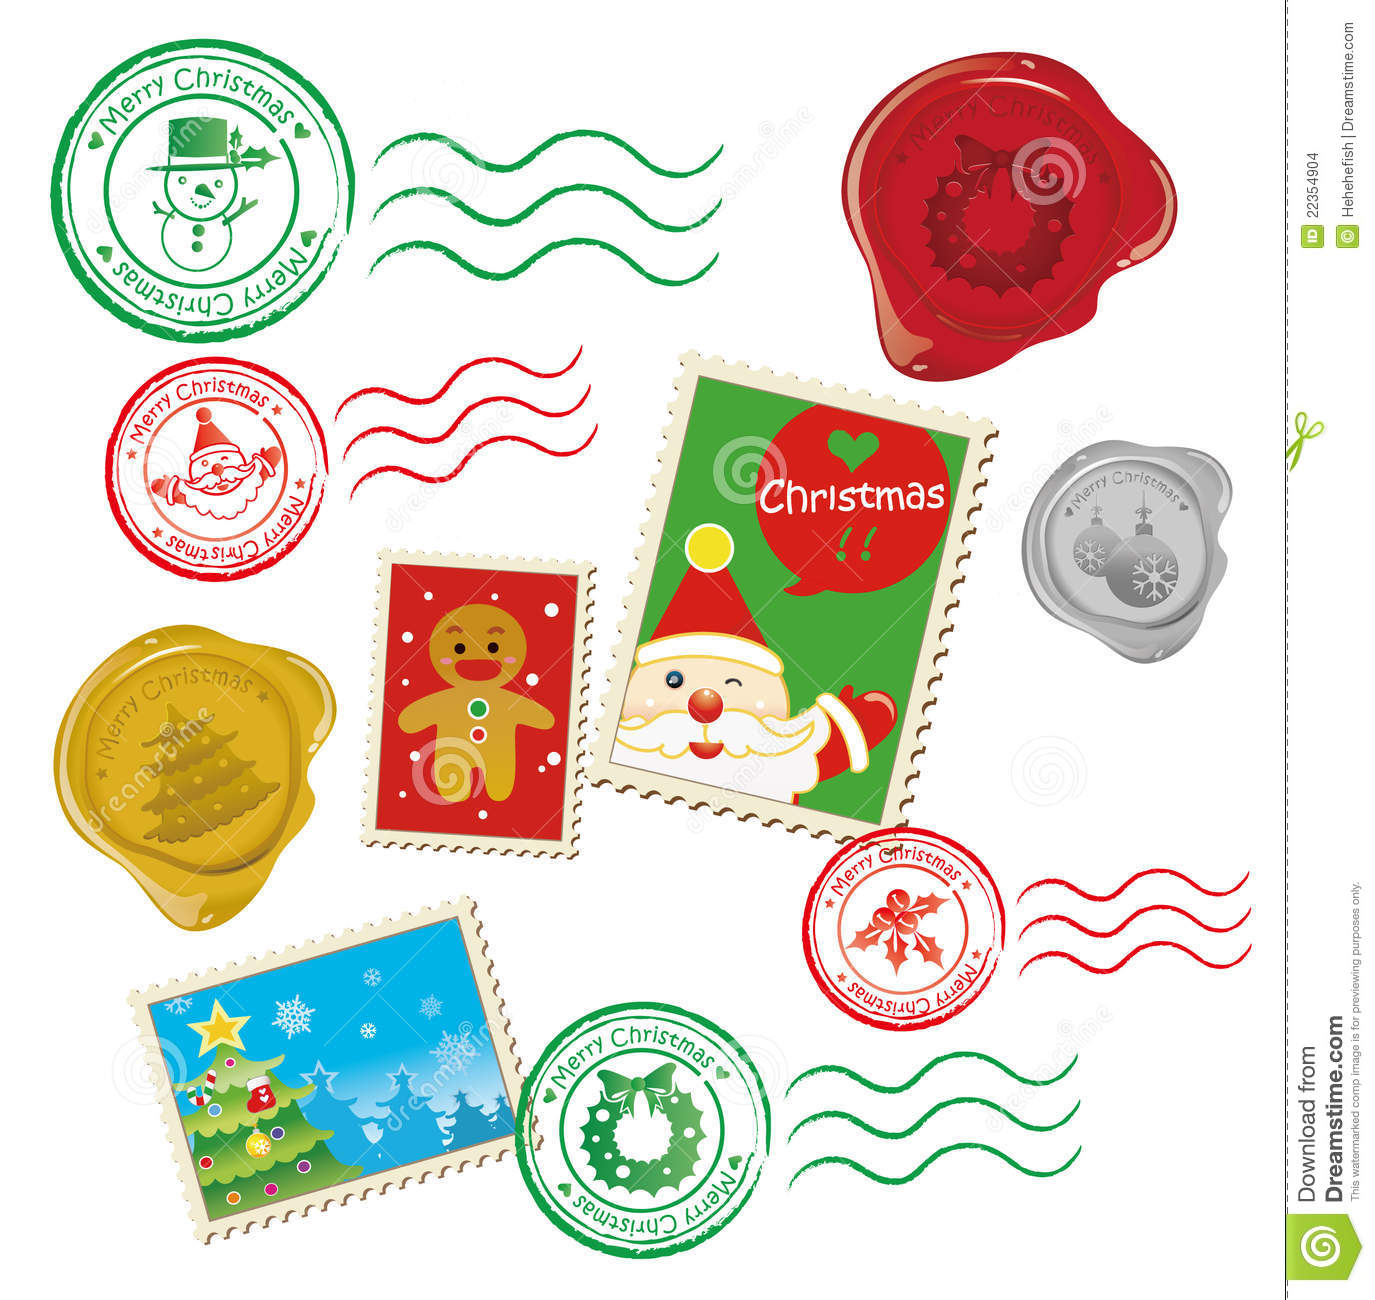 Graphics of wax seal, stamps and chops especially for Christmas day.